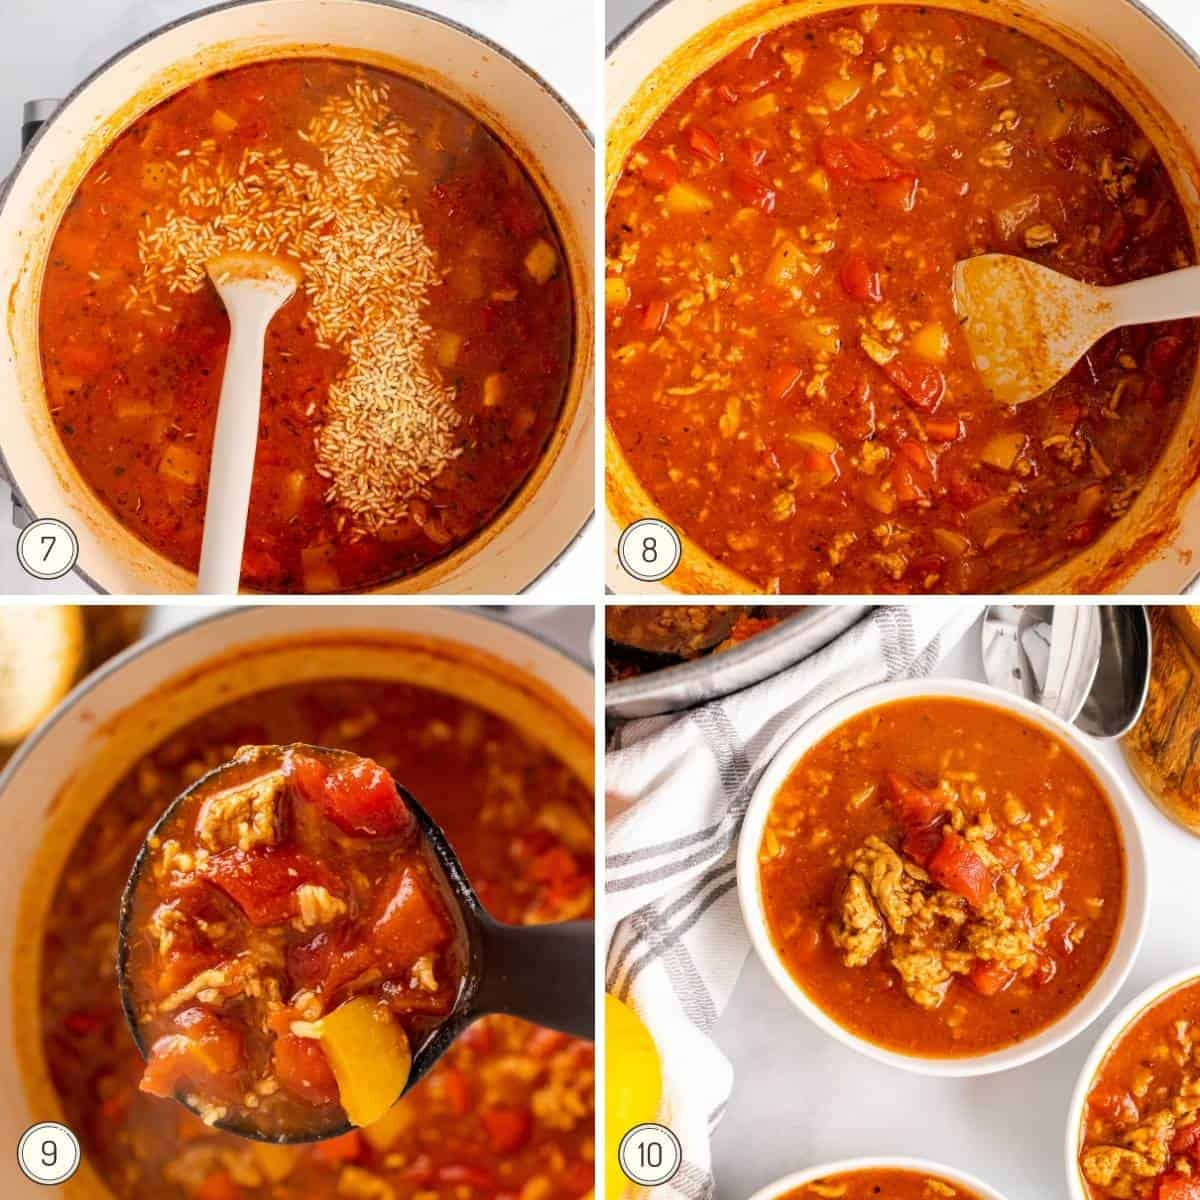 the last steps in a collage showing how to make stuffed pepper soup